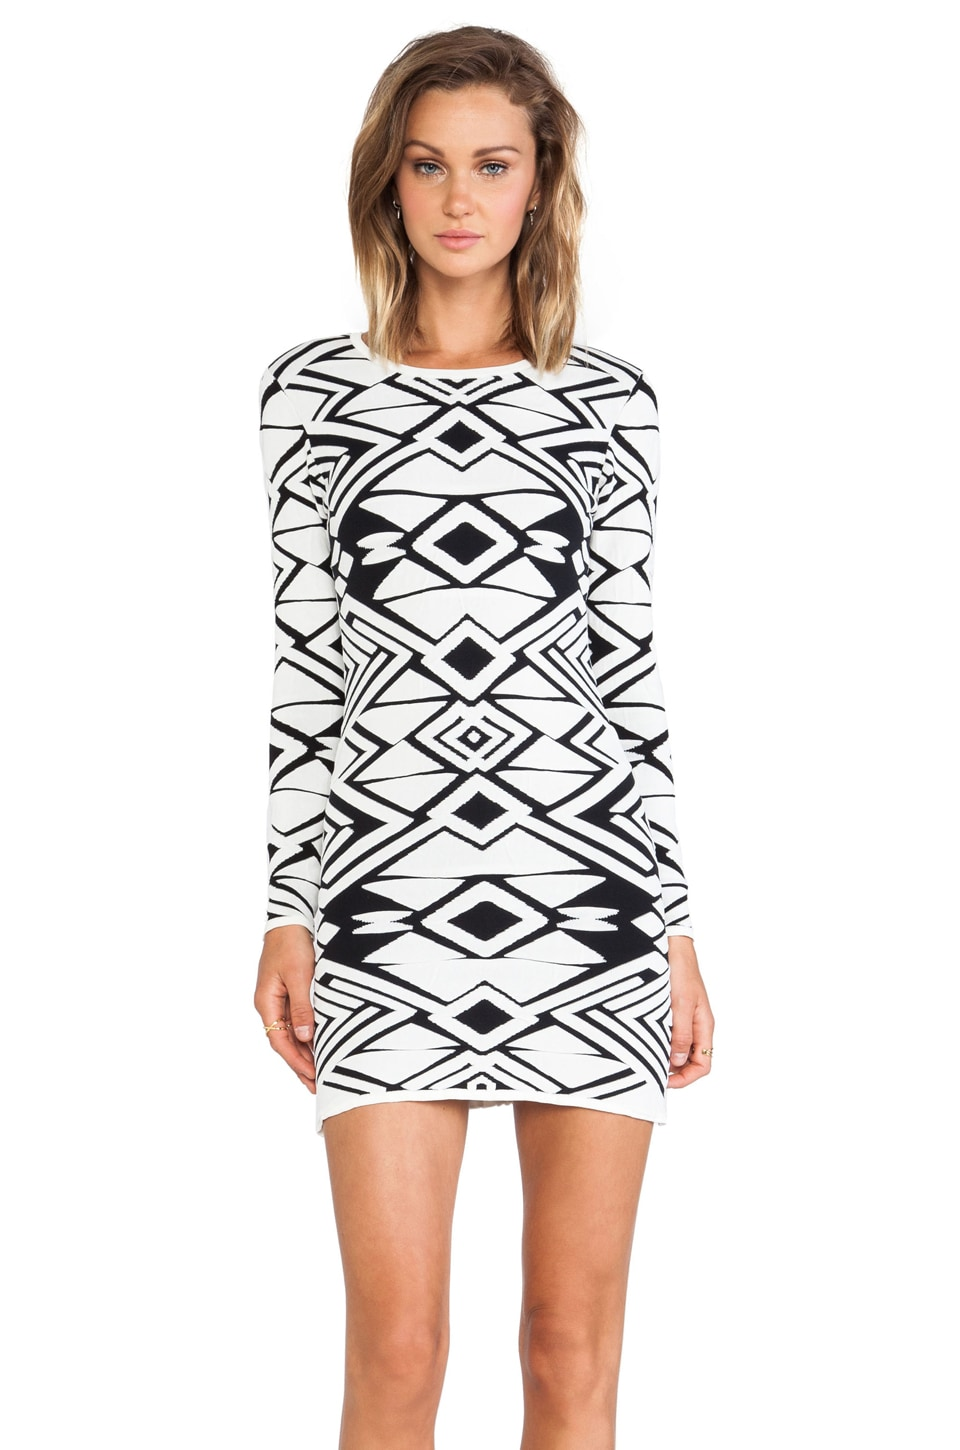 Parker Eve Knit Dress in Black & Ivory